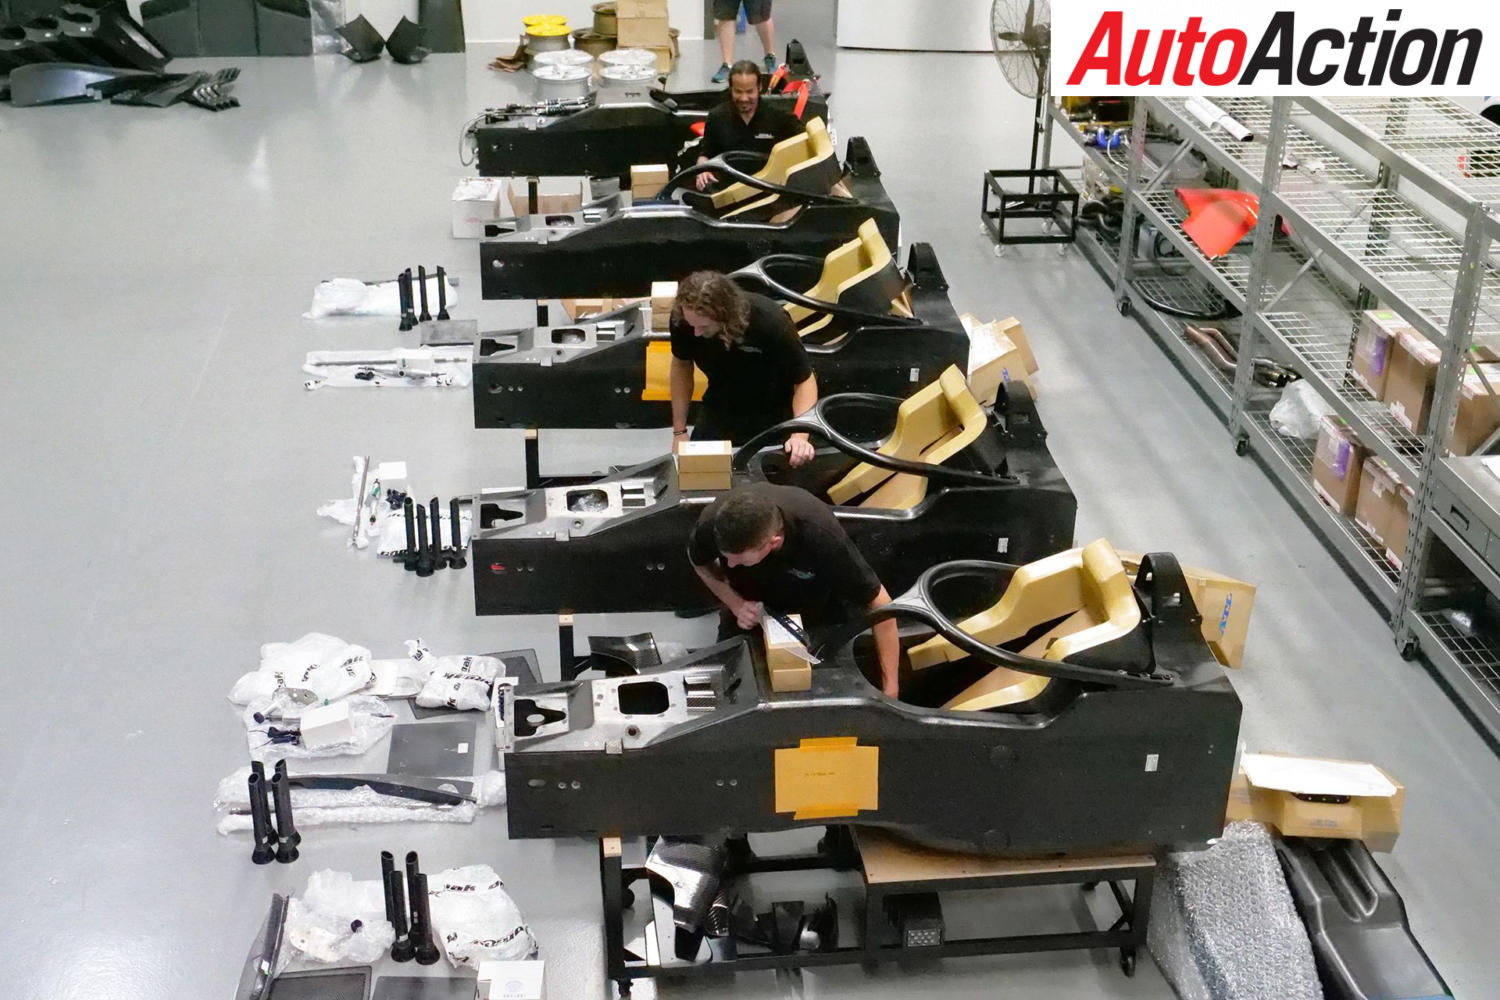 AUSSIE S5000 PRODUCTION RAMPS UP